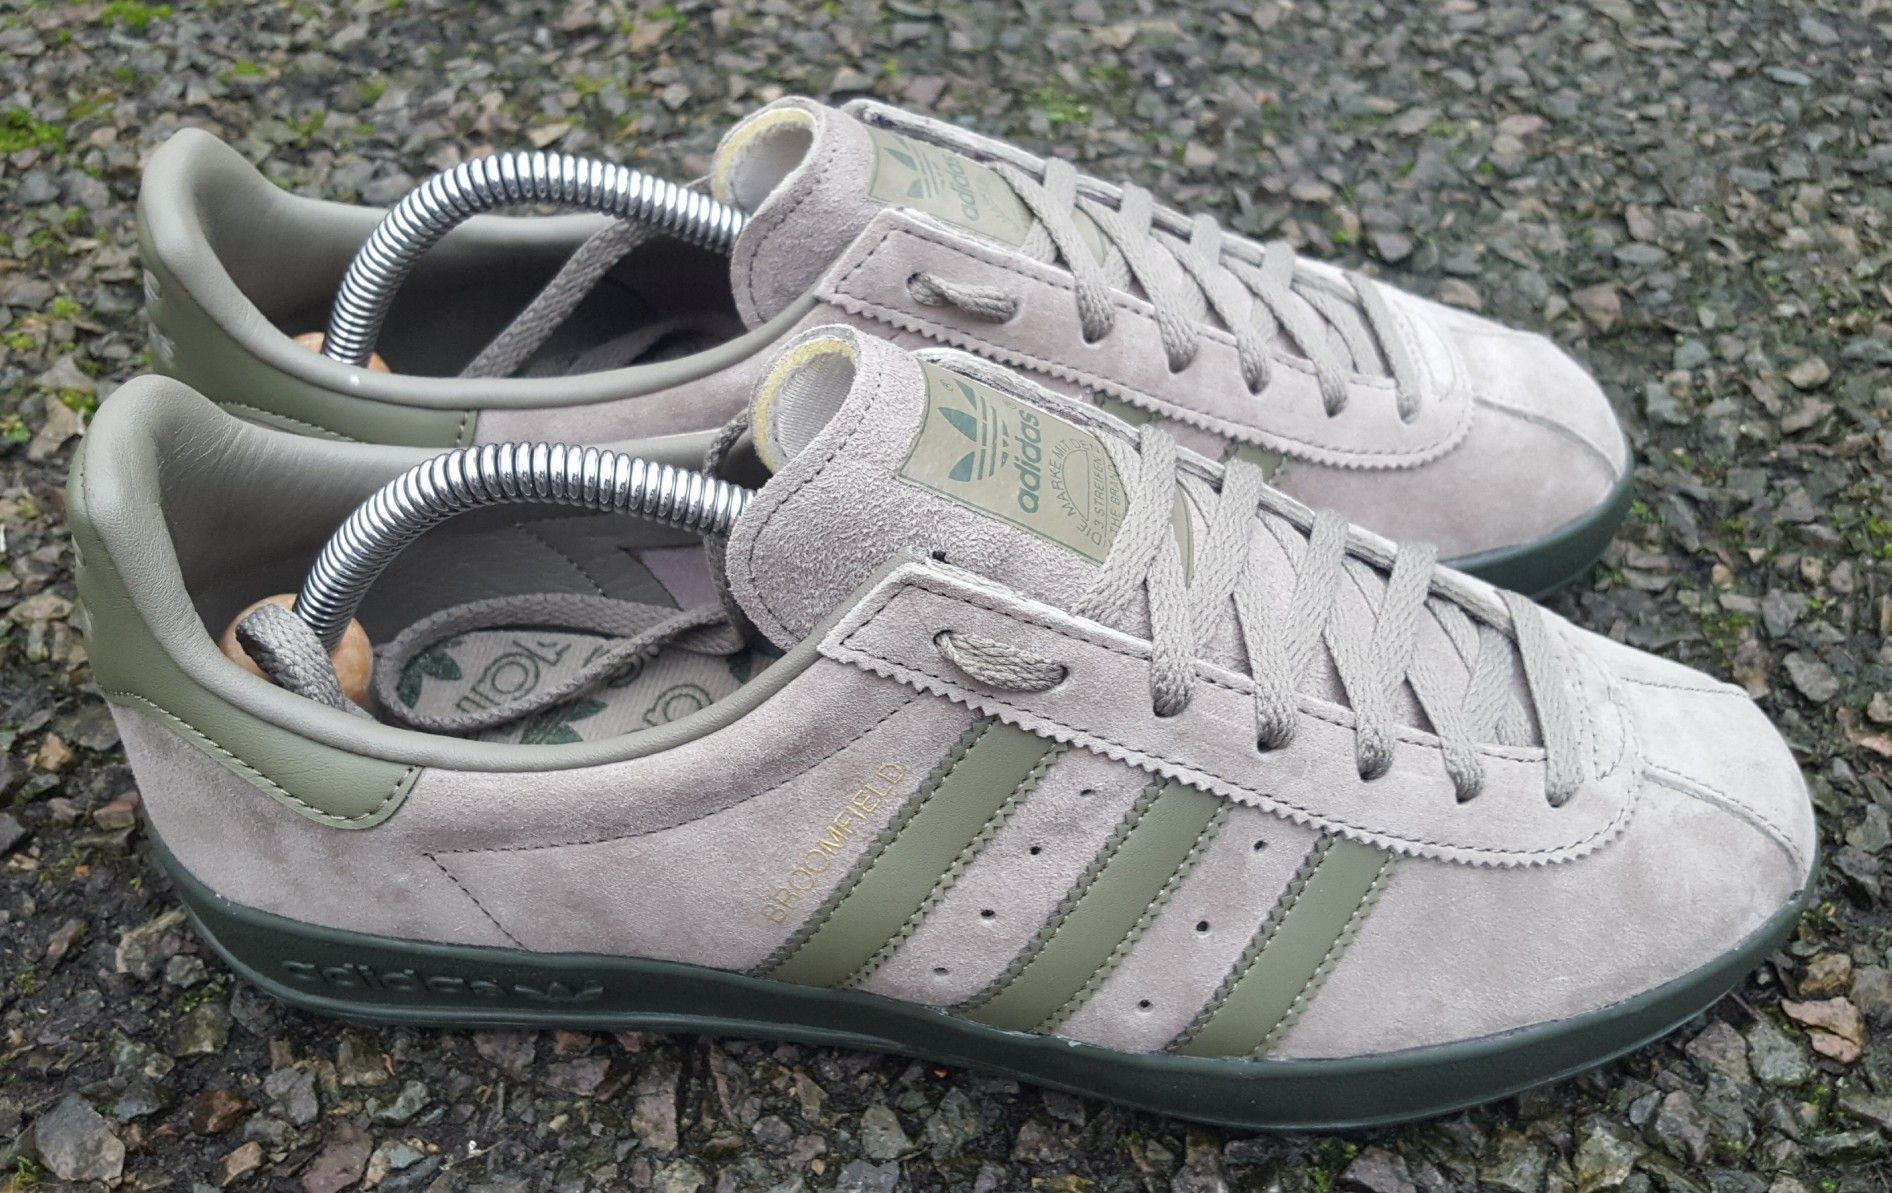 adidas Broomfield Trainers in Grey suede old skool retro terrace classic shoe